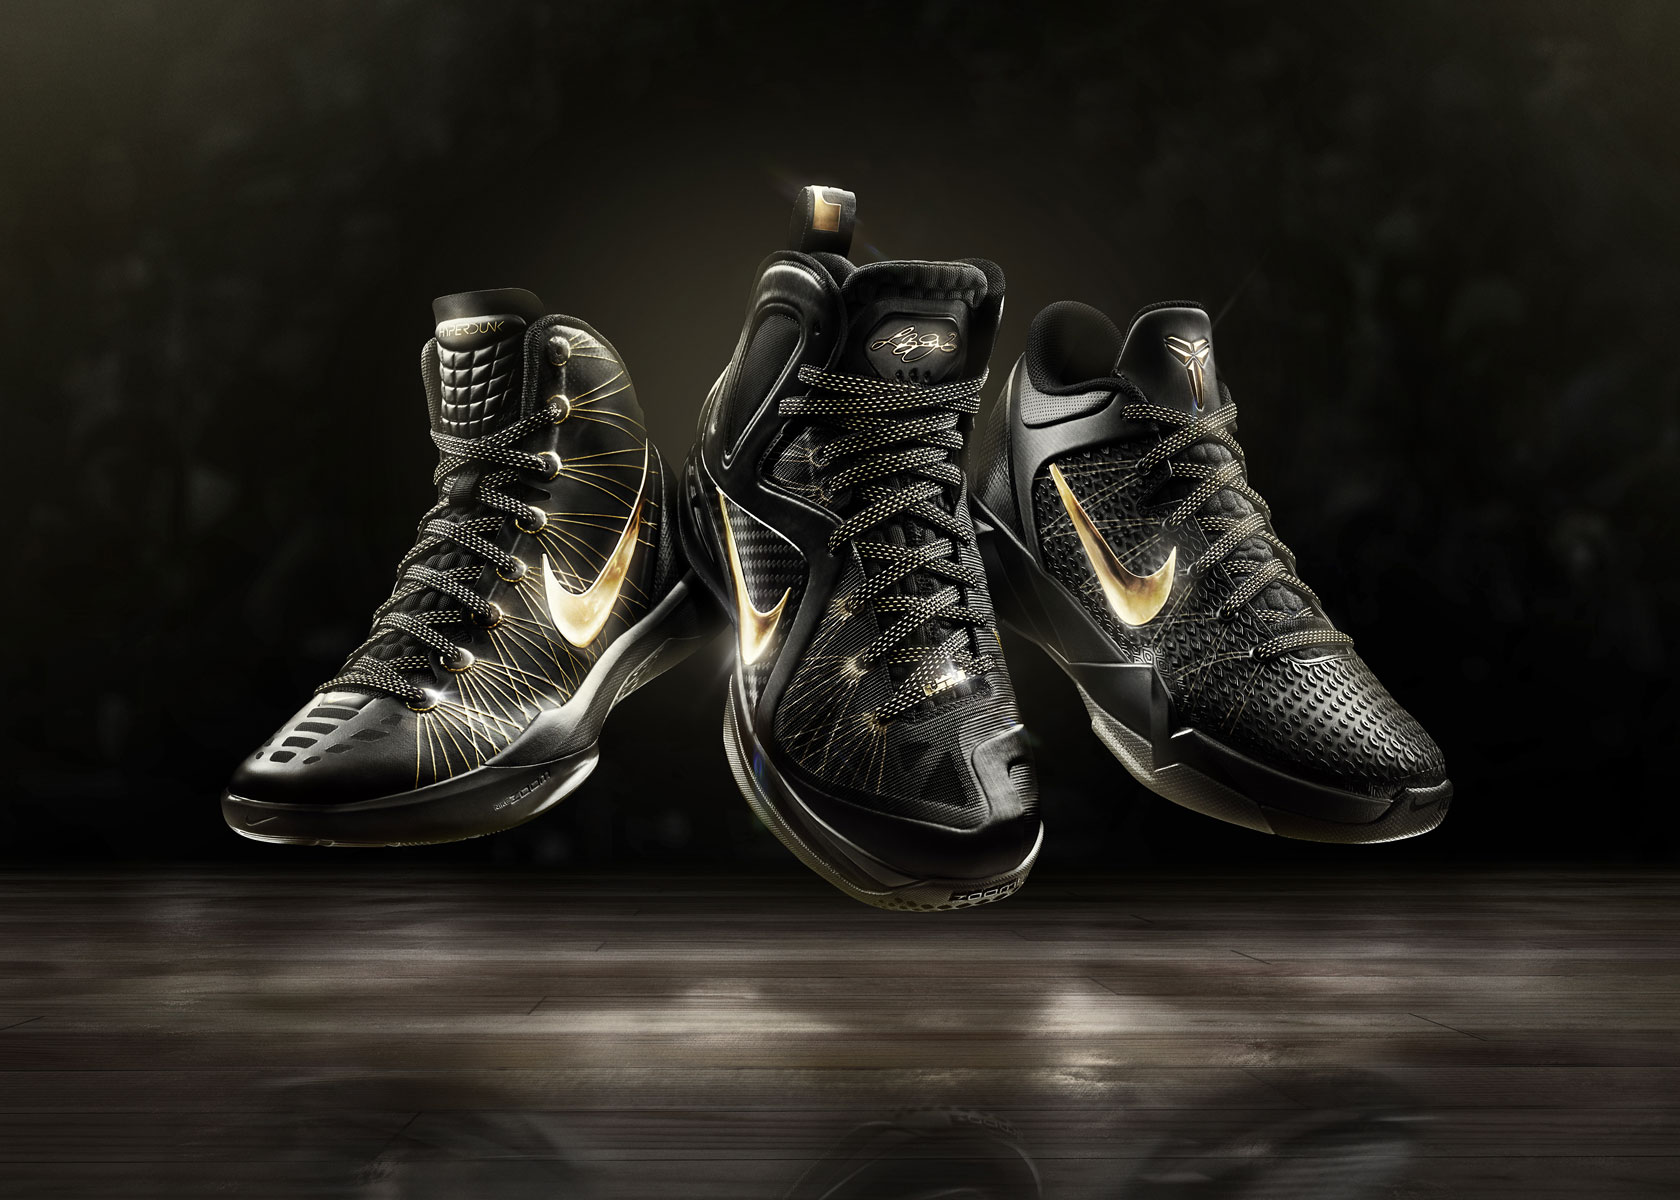 Nike&#8217;s Ultra High-end Basketball Shoes for LeBron, Kobe and Durant &#8211; Special Edition